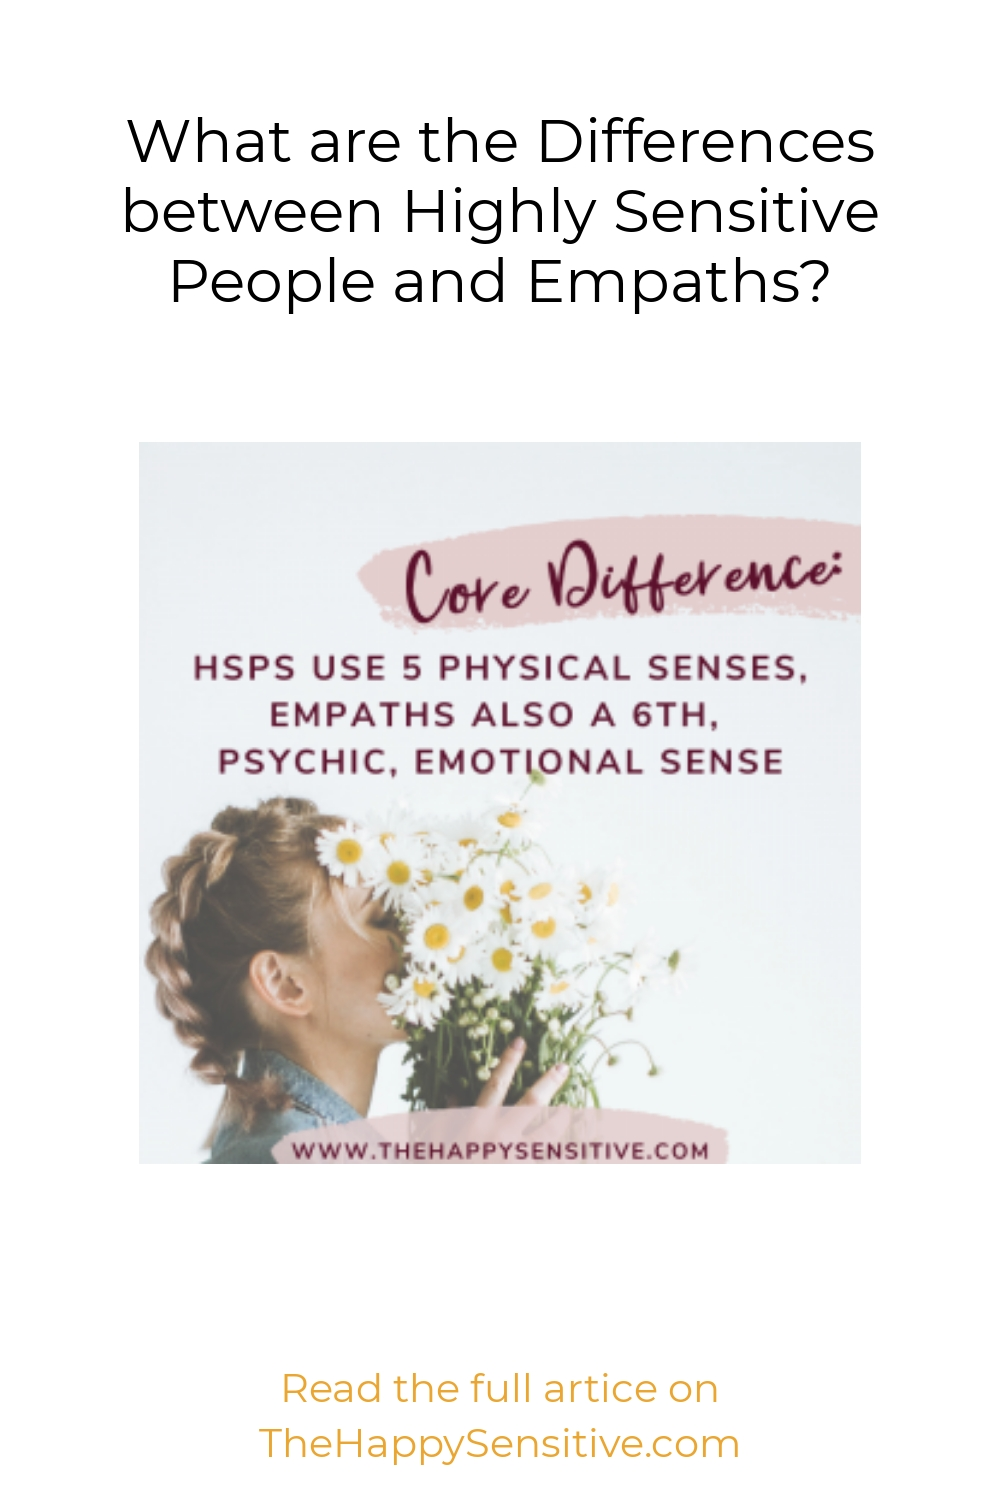 What are the Differences between Highly Sensitive People and Empaths?